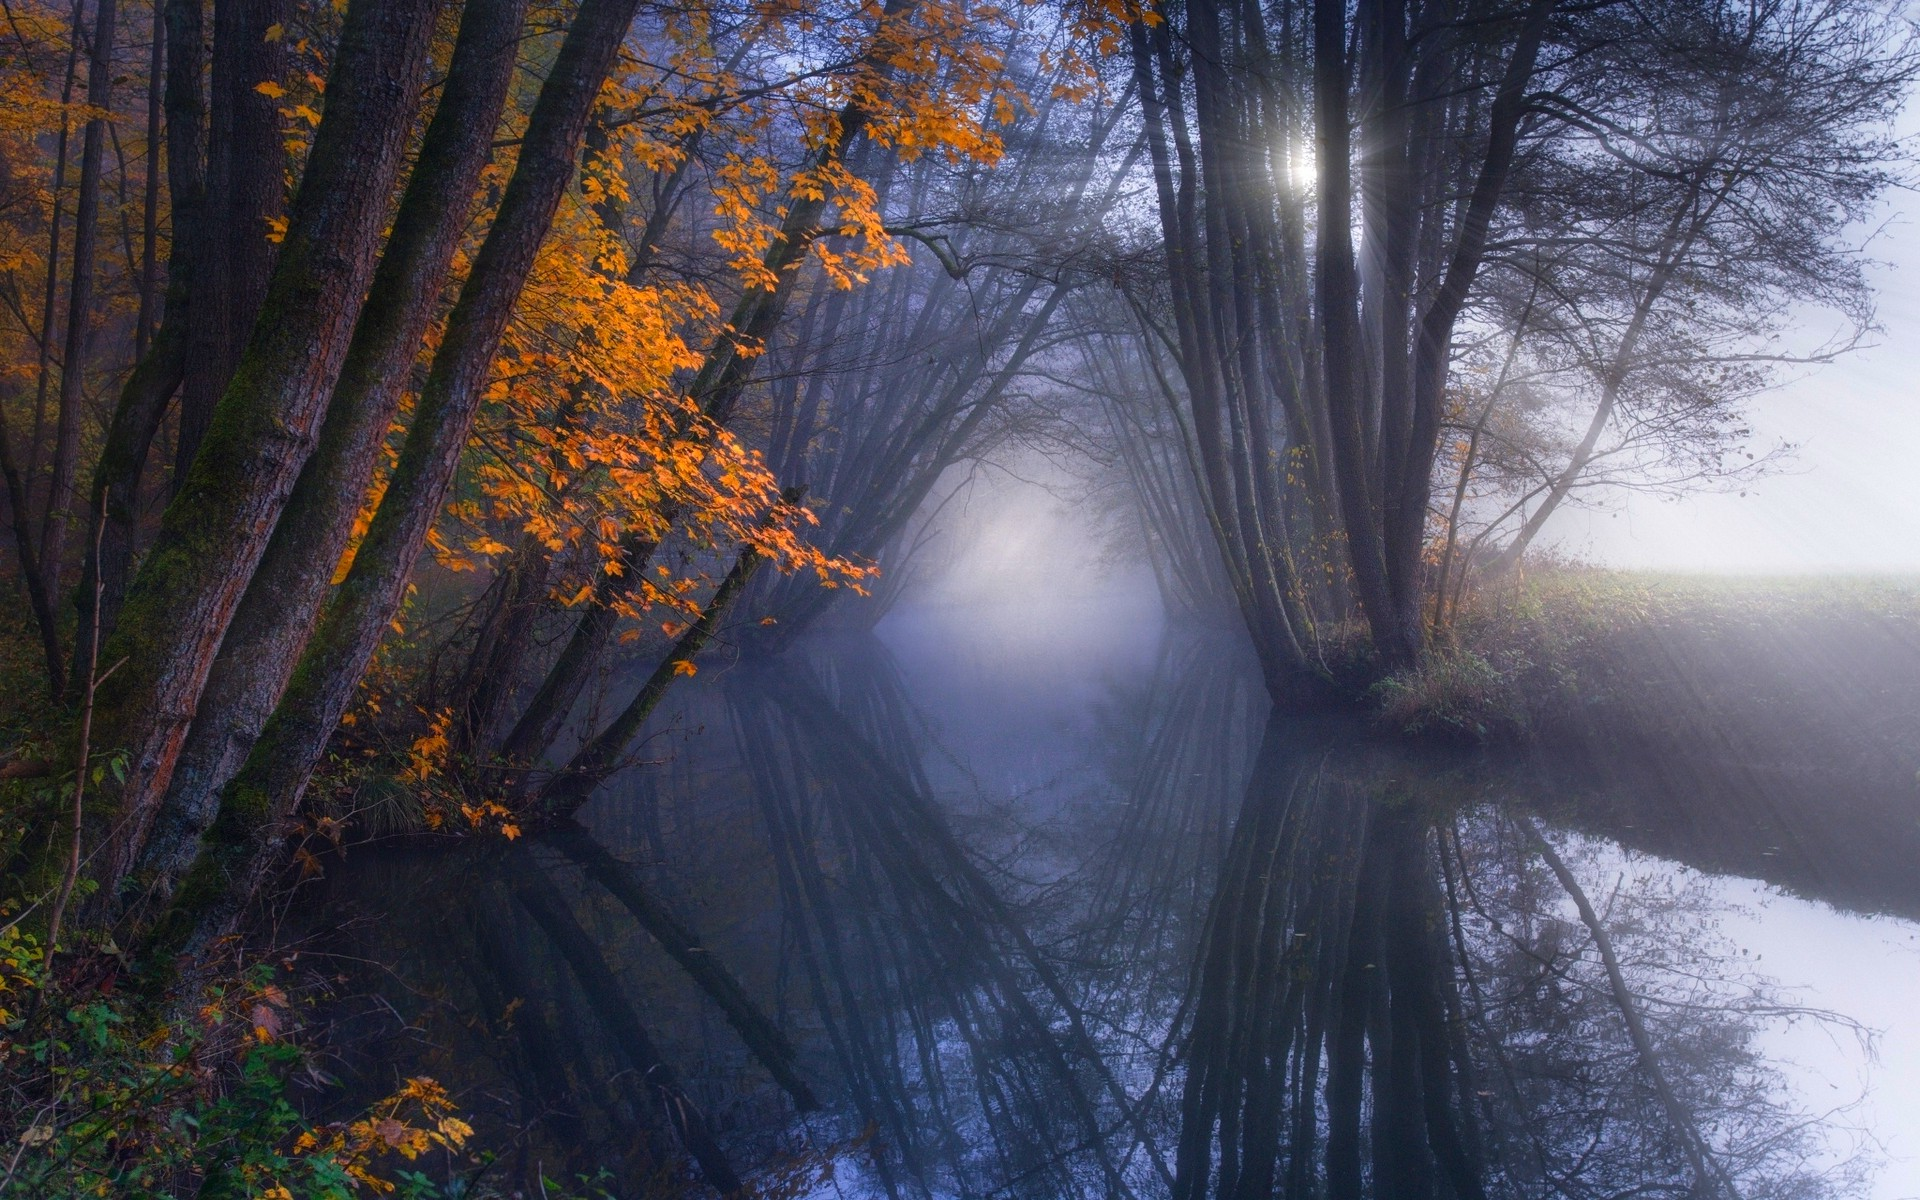 Fall Screen Wallpaper Nature Landscape Reflection Mist Fall Forest River